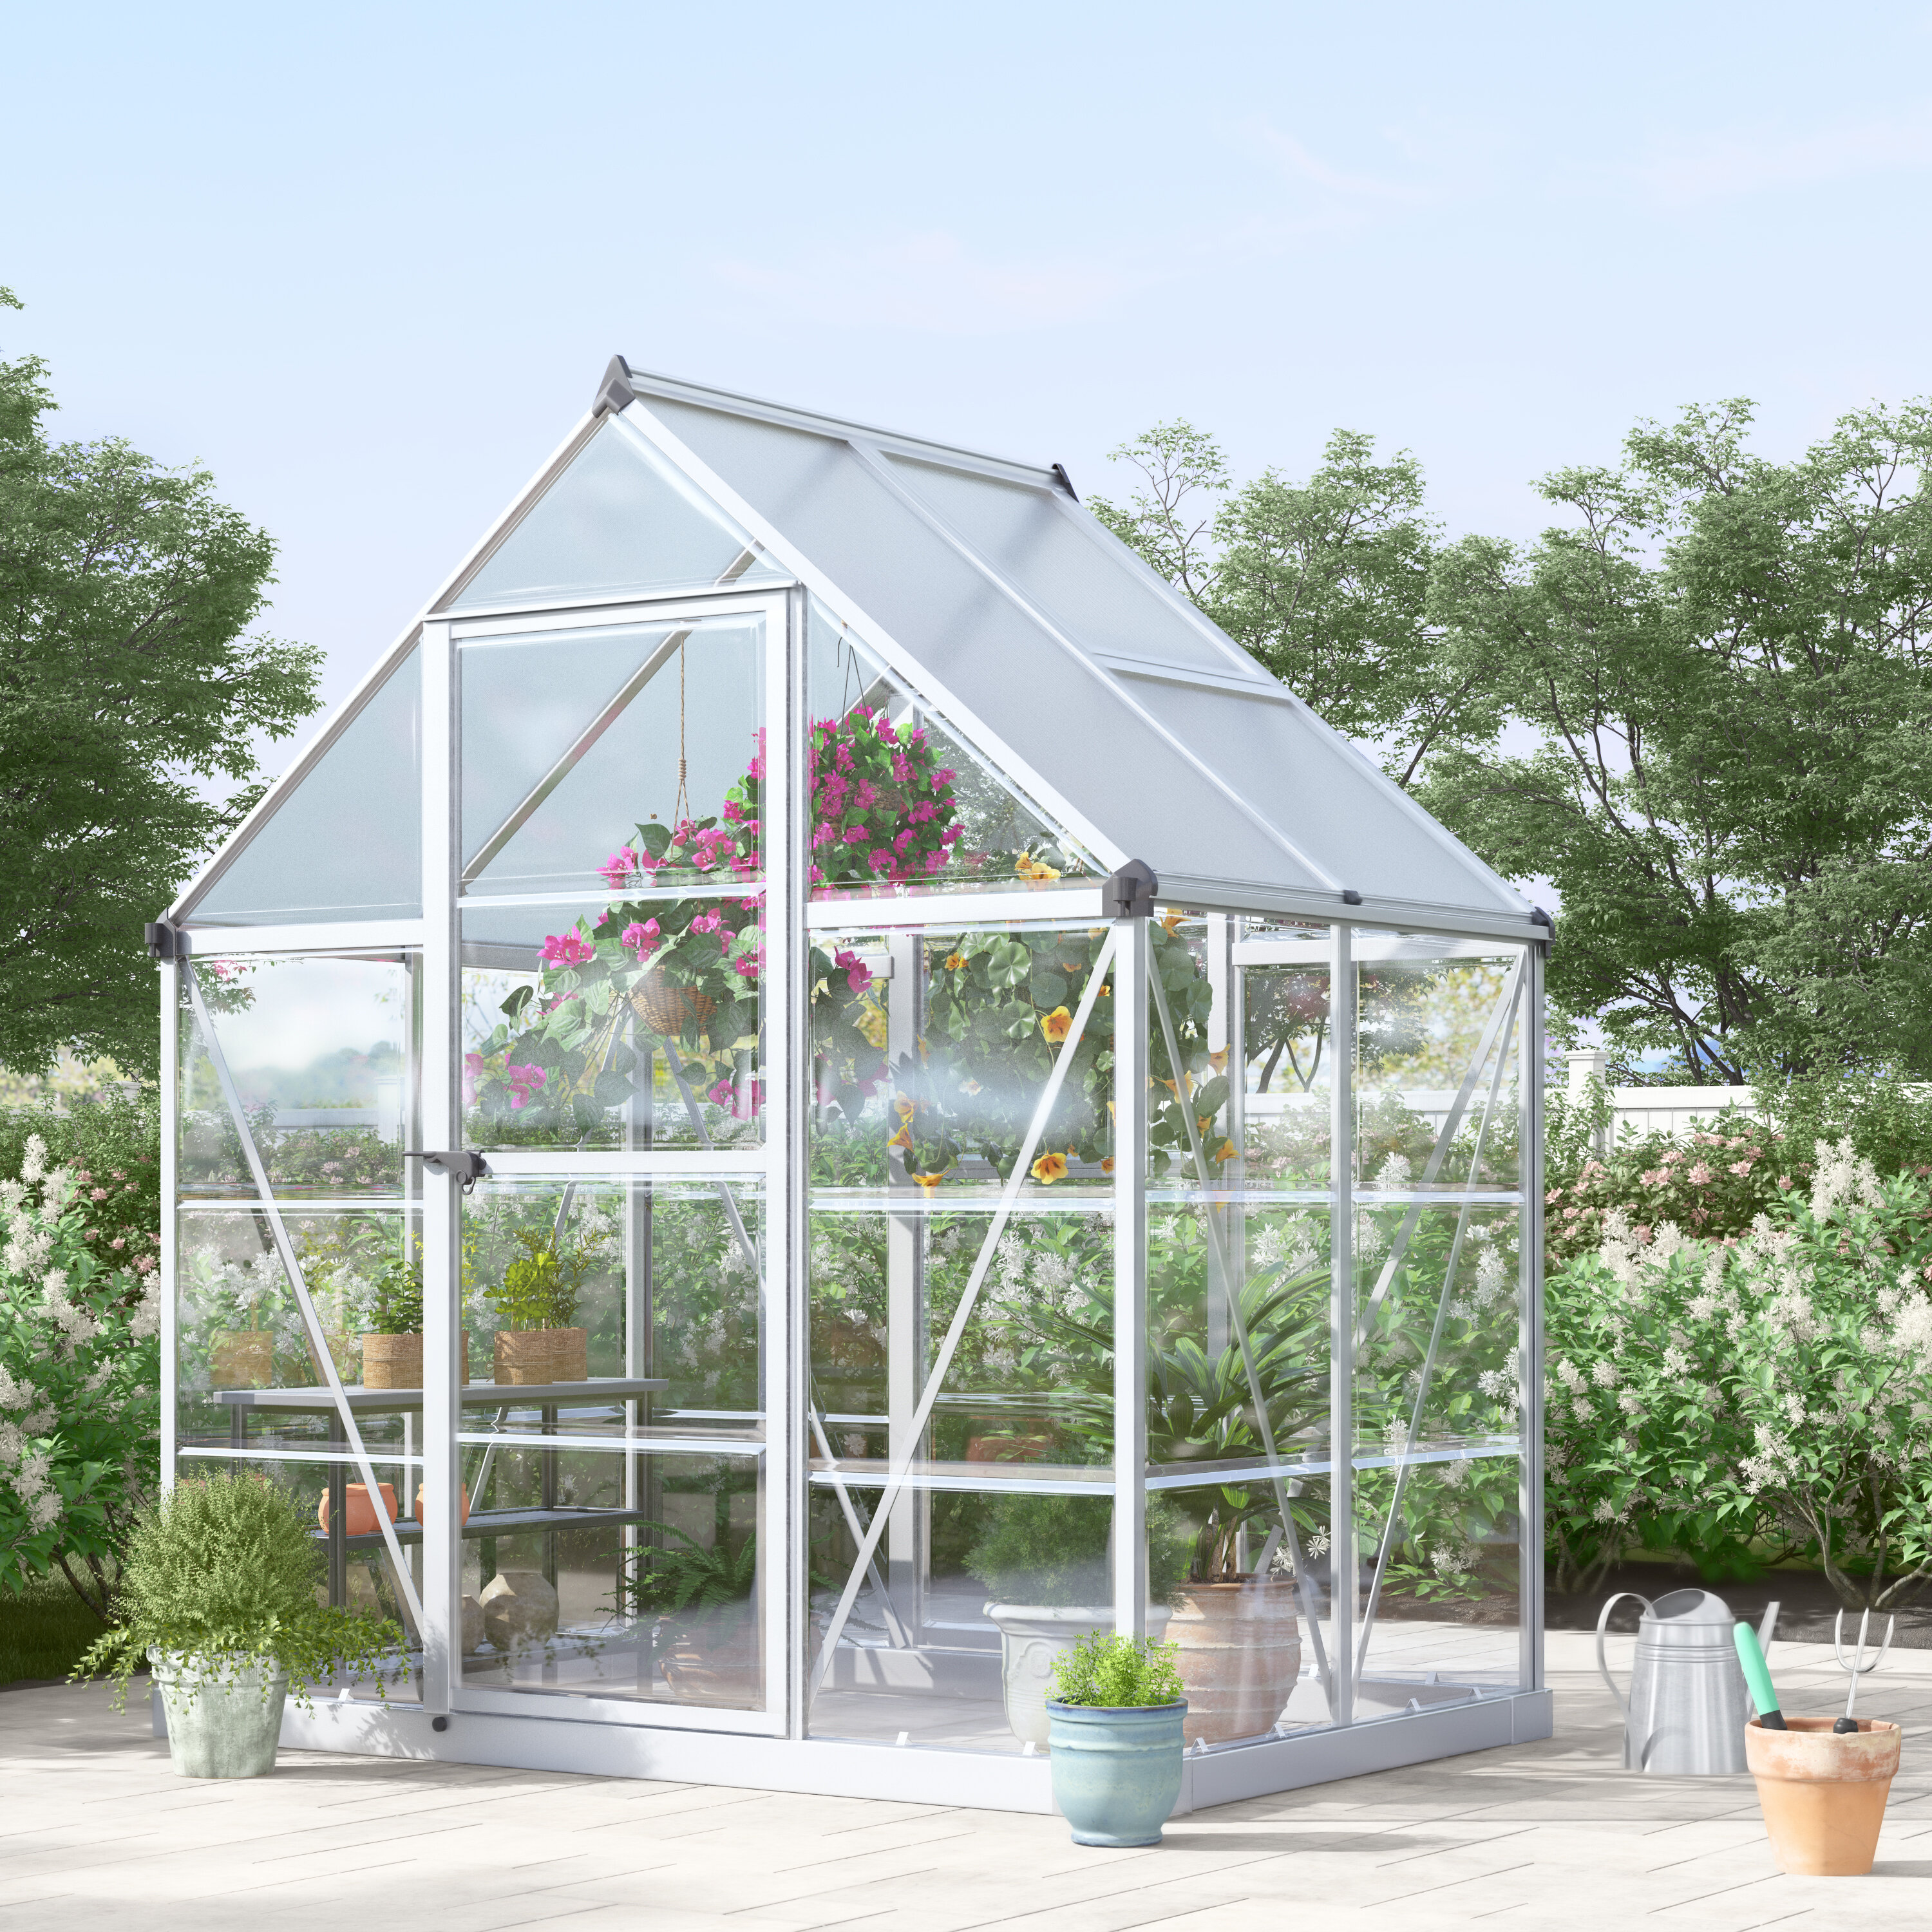 Palram Hybrid 6 Ft. W x 4.5 Ft. D Polycarbonate Greenhouse & Reviews on greenhouse heating methods, pvc greenhouse plans, mittleider greenhouse plans, diy greenhouse plans, greenhouse drawings, greenhouse house plans, greenhouse layout plans, commercial greenhouse plans, greenhouse as a house, home greenhouse plans, pit greenhouse plans, solar greenhouse plans, simple greenhouse plans, back yard greenhouse plans, homemade greenhouse plans, texas preppers greenhouse plans, cedar greenhouse plans, greenhouse supplies, greenhouse plans wood, small greenhouse plans,